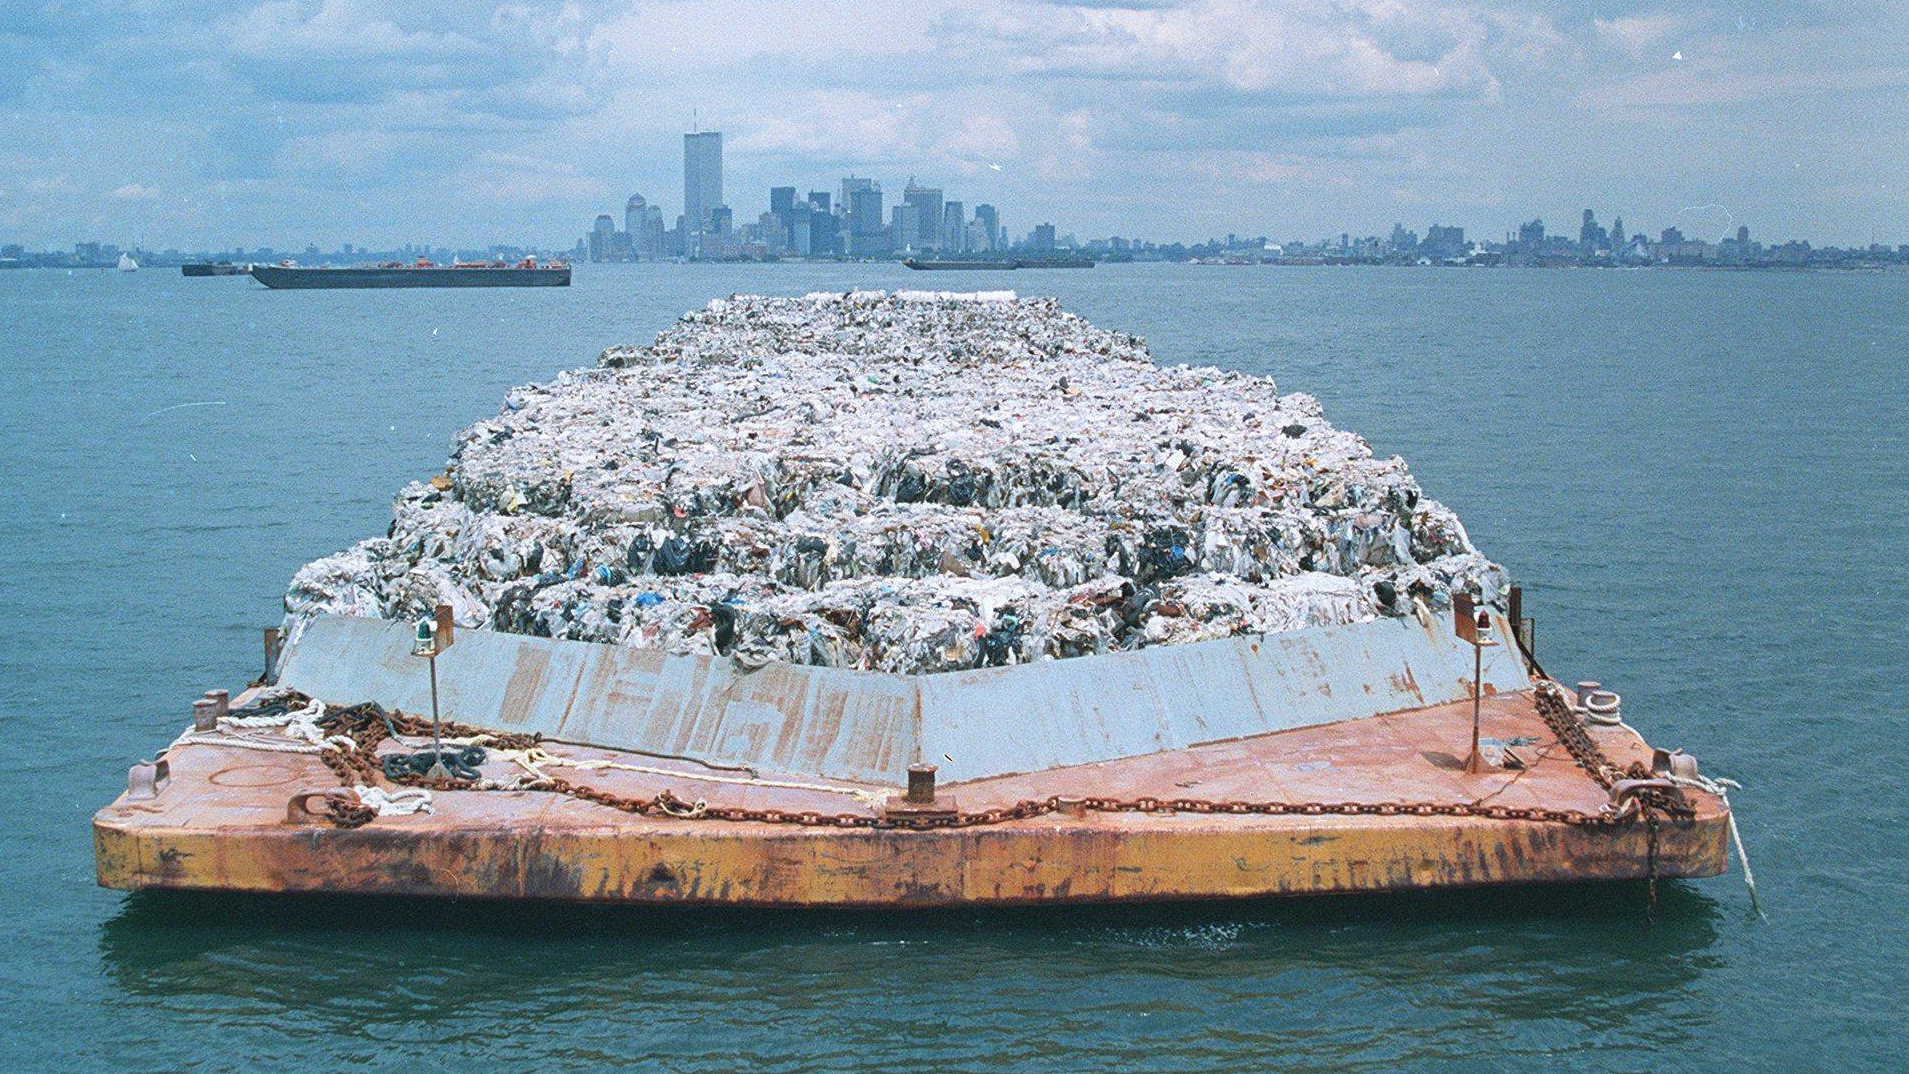 Episode 925: A Mob Boss, A Garbage Boat and Why We Recycle